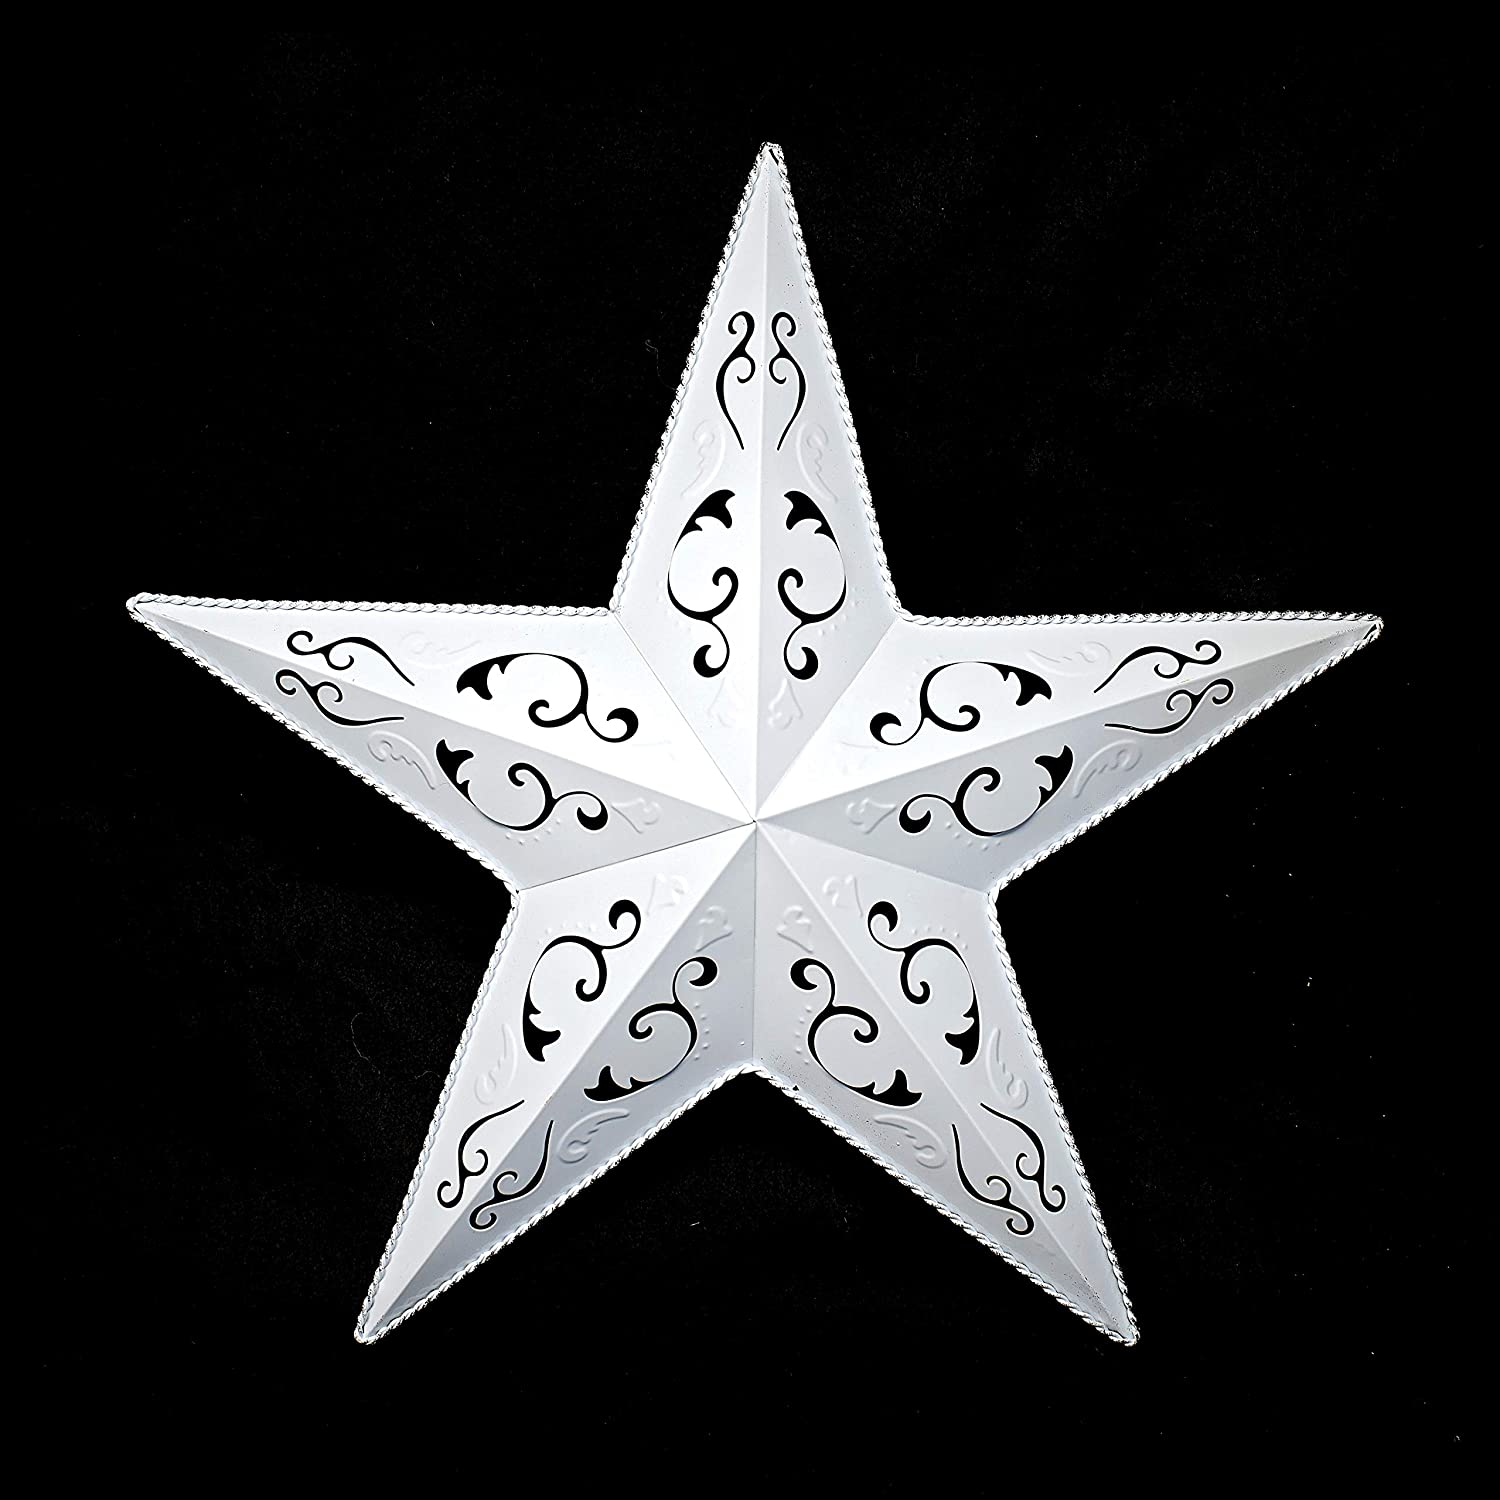 """WHITE LACY METAL BARN STAR 18"""" - rustic cut out style country indoor outdoor Christmas home decor. Interior exterior lacey metal stars decorations look great hanging on house walls fence porch"""